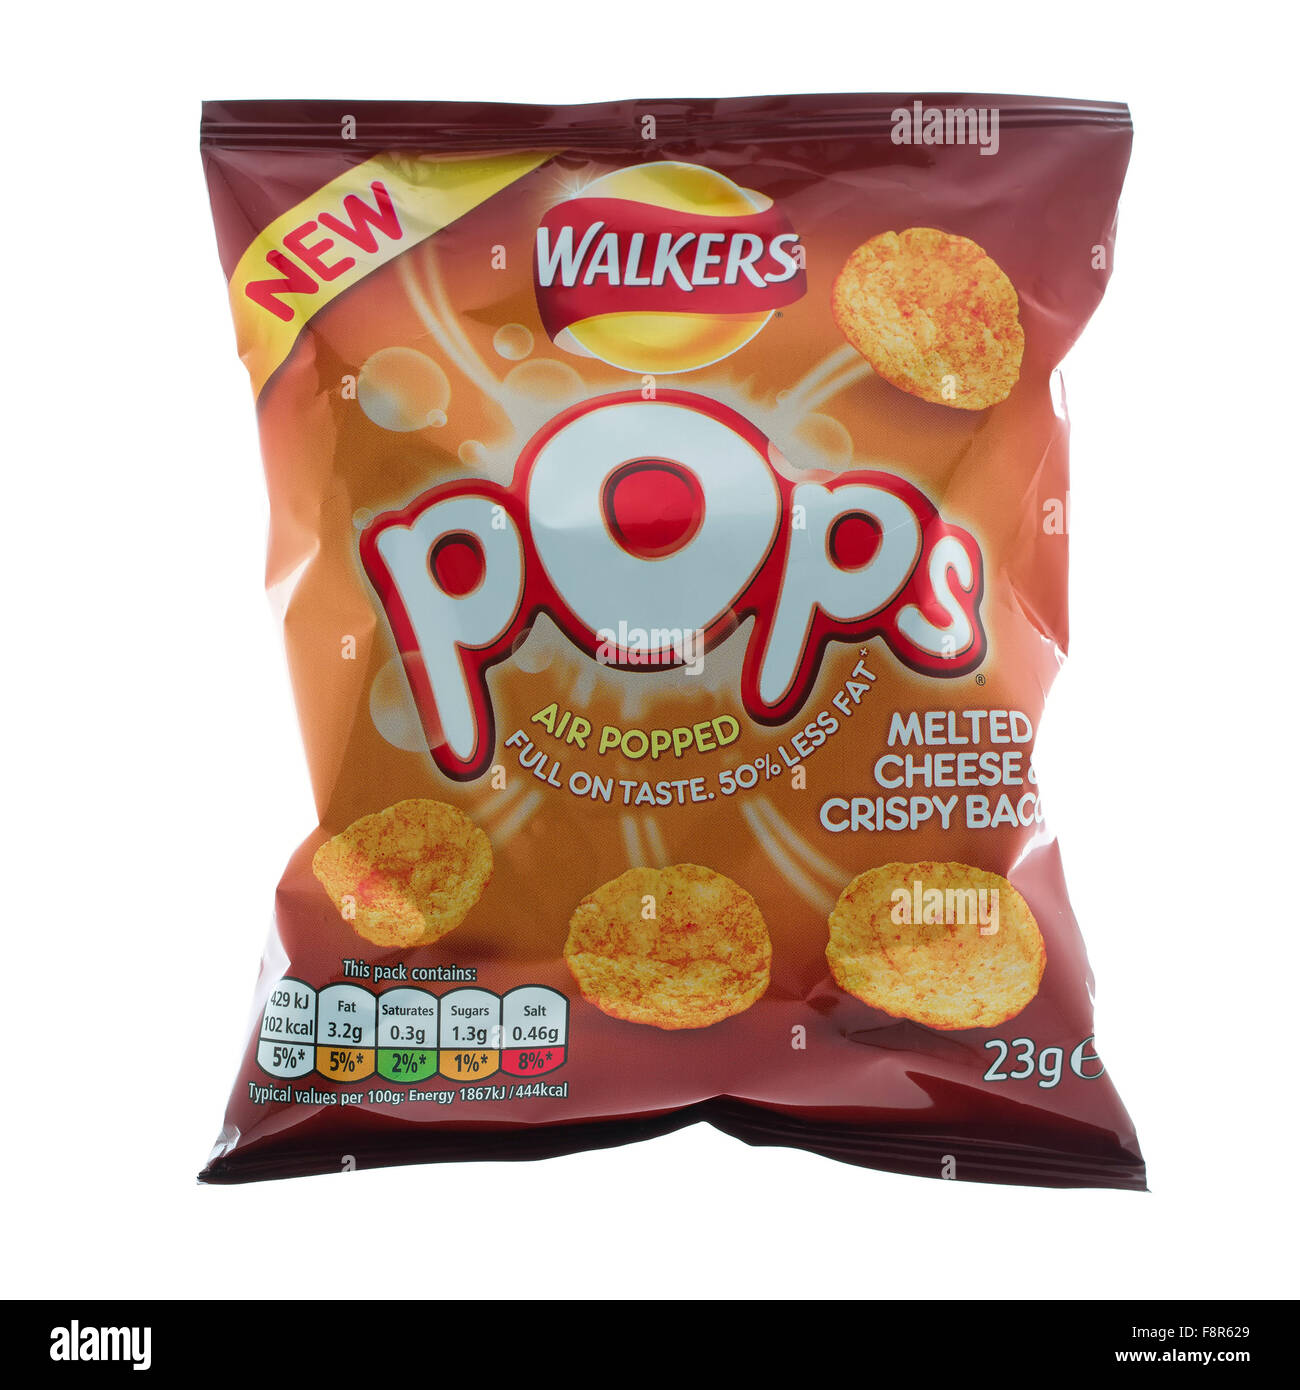 Packet of Walkers Pops Melted Chesse & Crispy Bacon on a White background - Stock Image